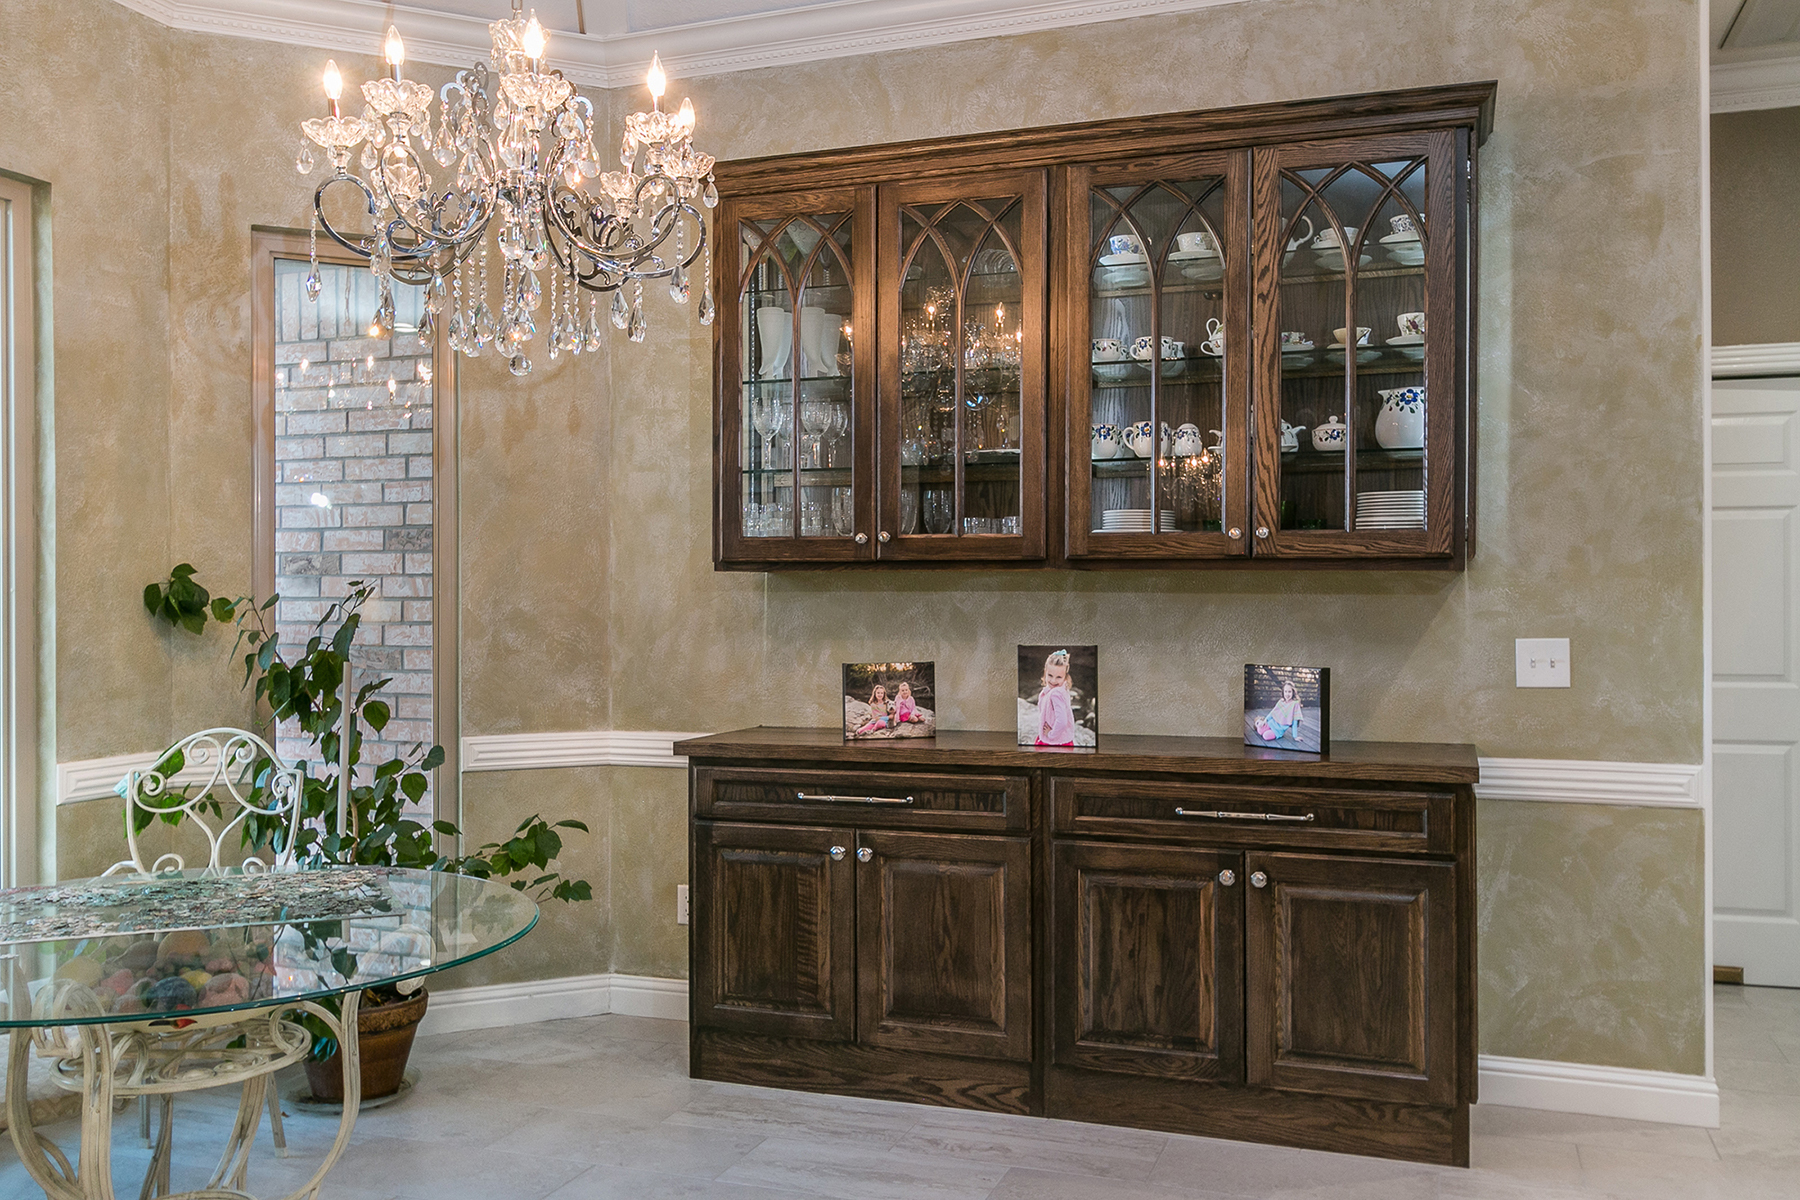 Stained dining room cabinets in oak Tawny by Showplace Cabinetry-View 1